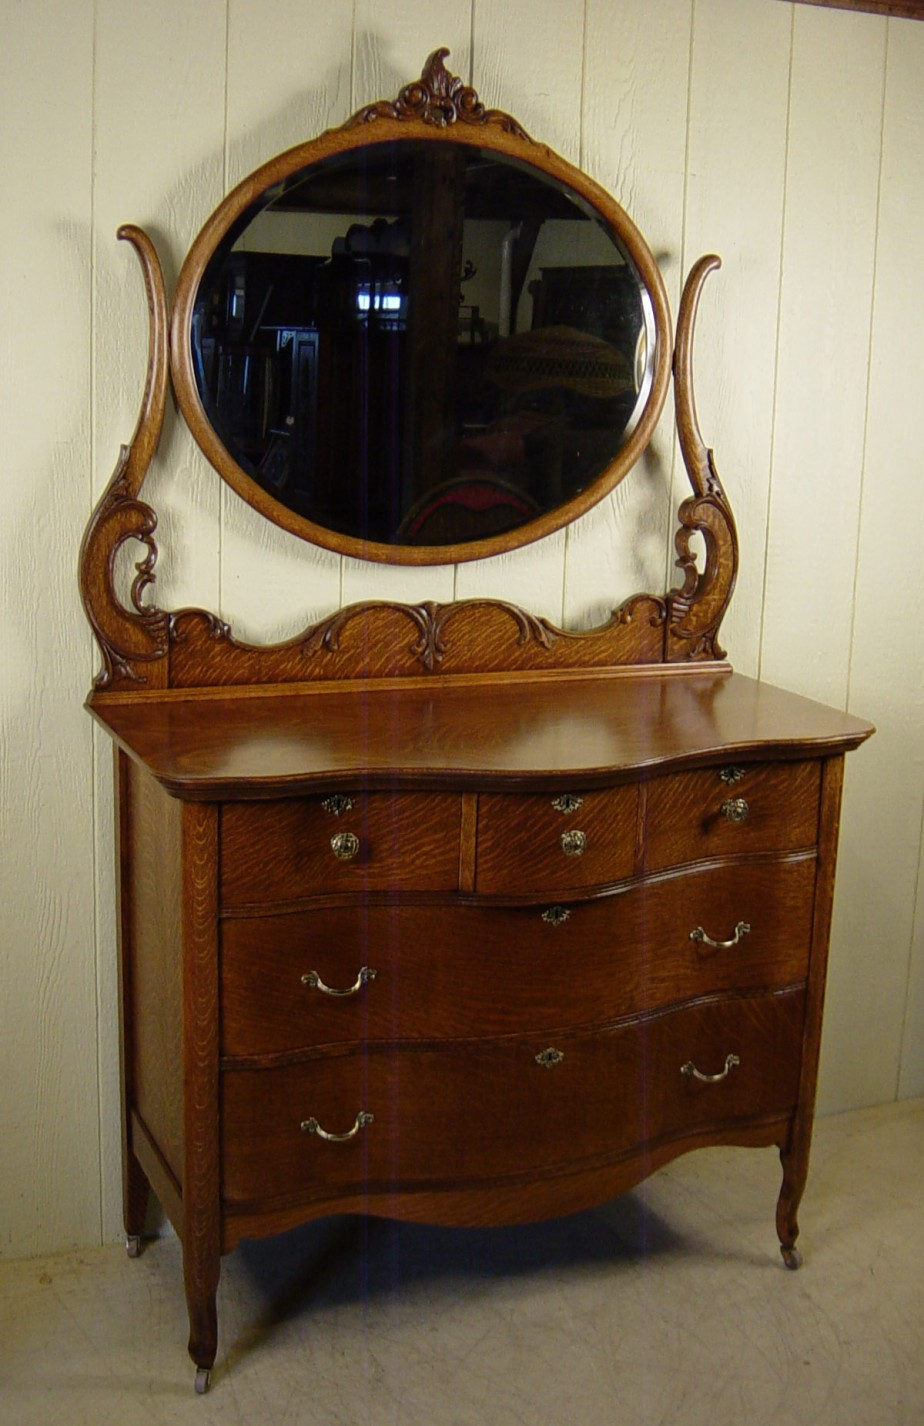 Image of: Small Antique Dresser With Mirror